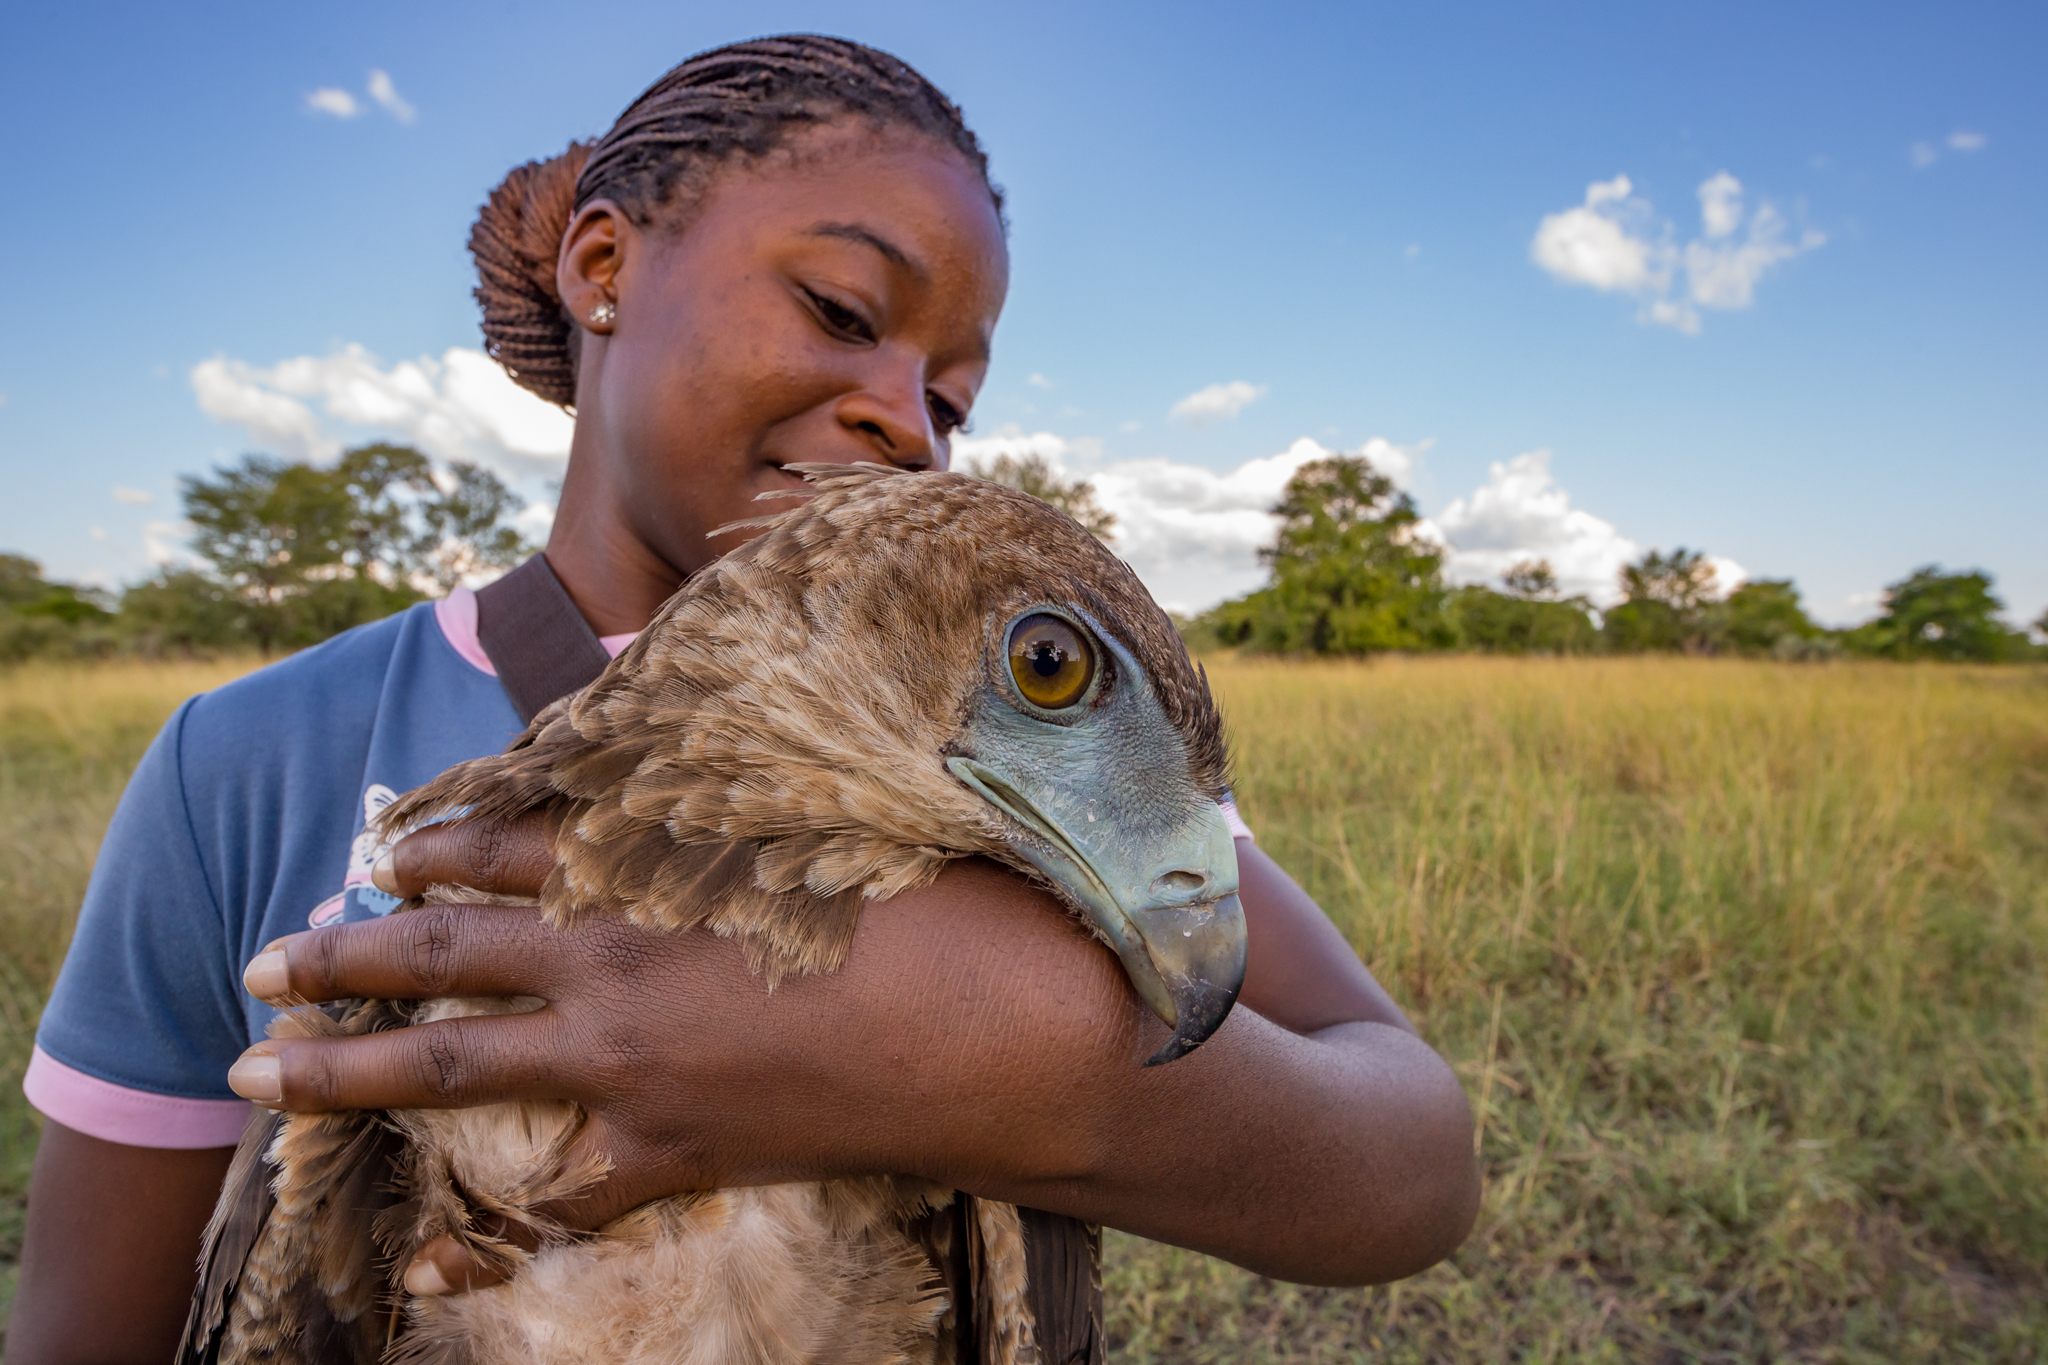 Young Mozambican biologist Diolinda Mundoza cradles a juvenile bateleur eagle (Terathopius ecaudatus) before releasing it. Although vultures are the only known obligate scavengers, many other birds like bateleur eagles, fish eagles, and marabou storks are facultative, or opportunistic, scavengers that compete with vultures for food. Biologists from the Intermountain Bird Observatory measure and tag these important raptors as well.